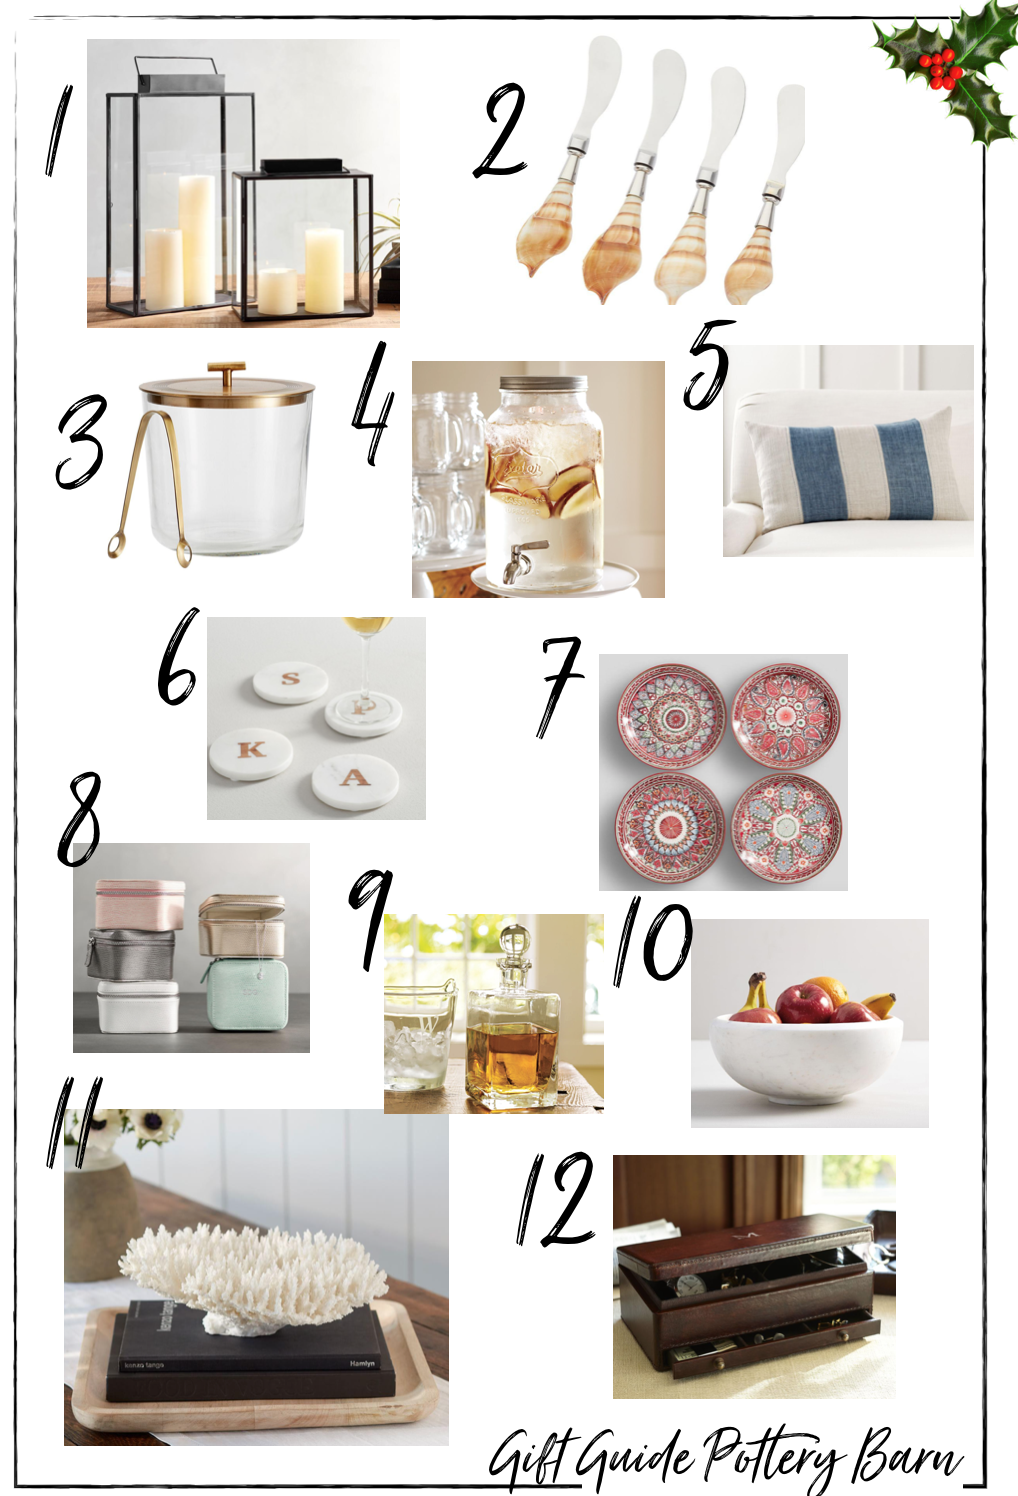 West Elm Pottery Barn Pottery Barn Kids And Williams